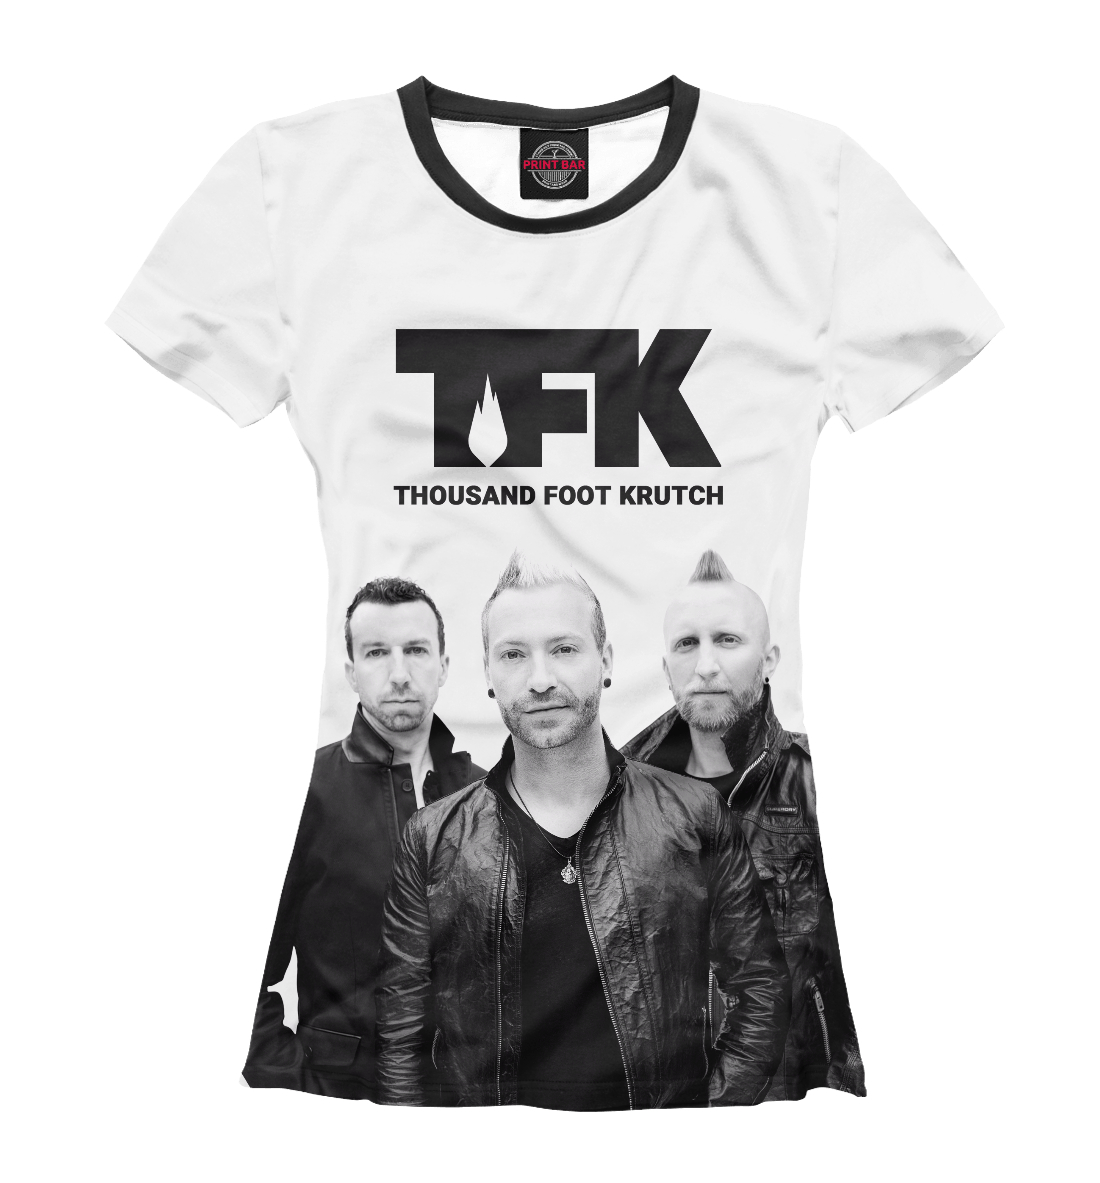 Купить Thousand Foot Krutch, Printbar, Футболки, MZK-607327-fut-1